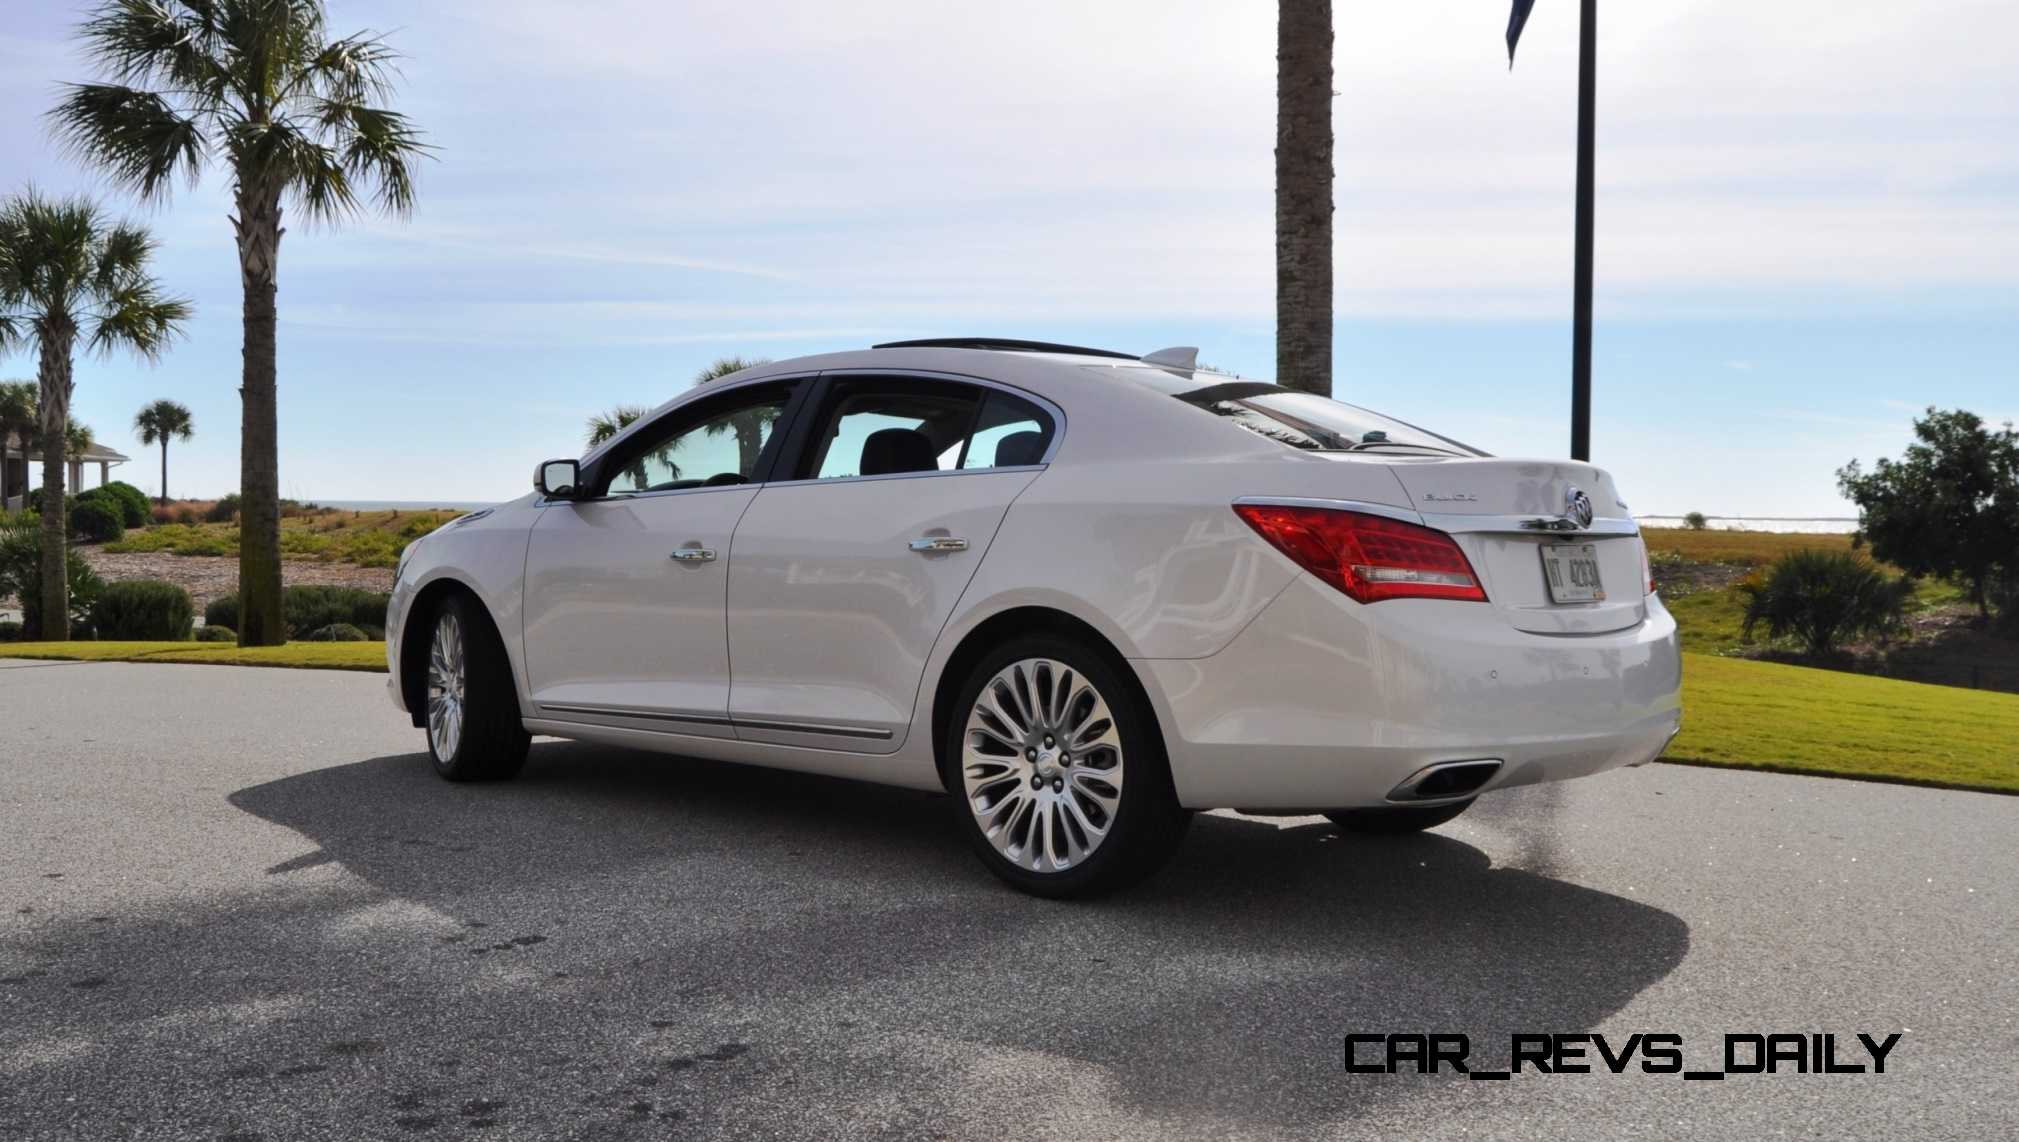 2015 buick lacrosse. Cars Review. Best American Auto & Cars Review